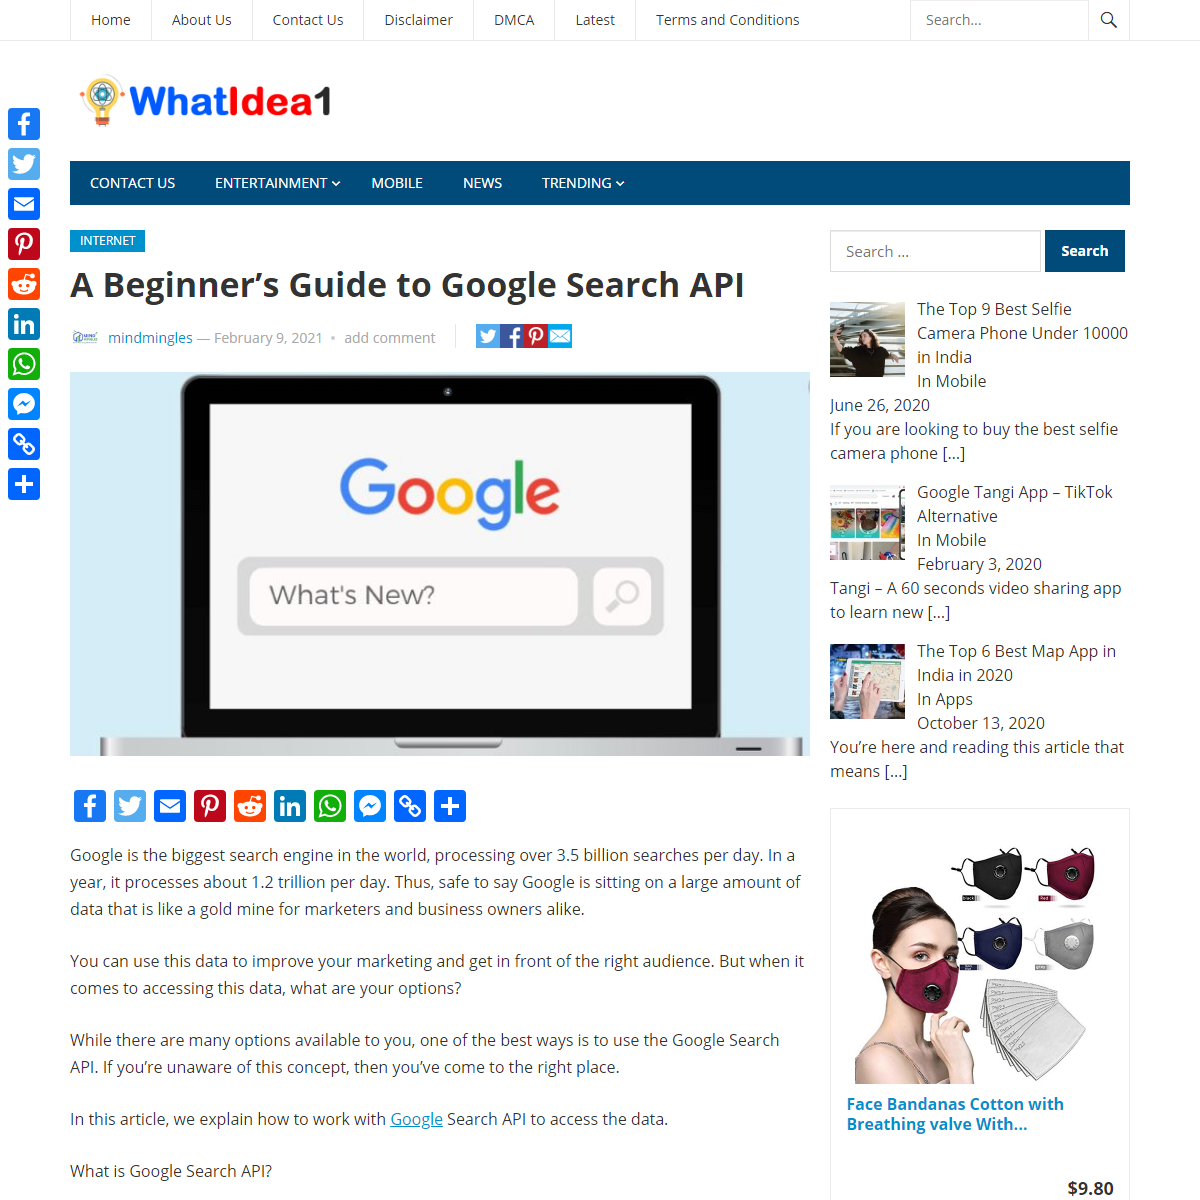 A Beginner's Guide to Google Search API - WhatIdea1